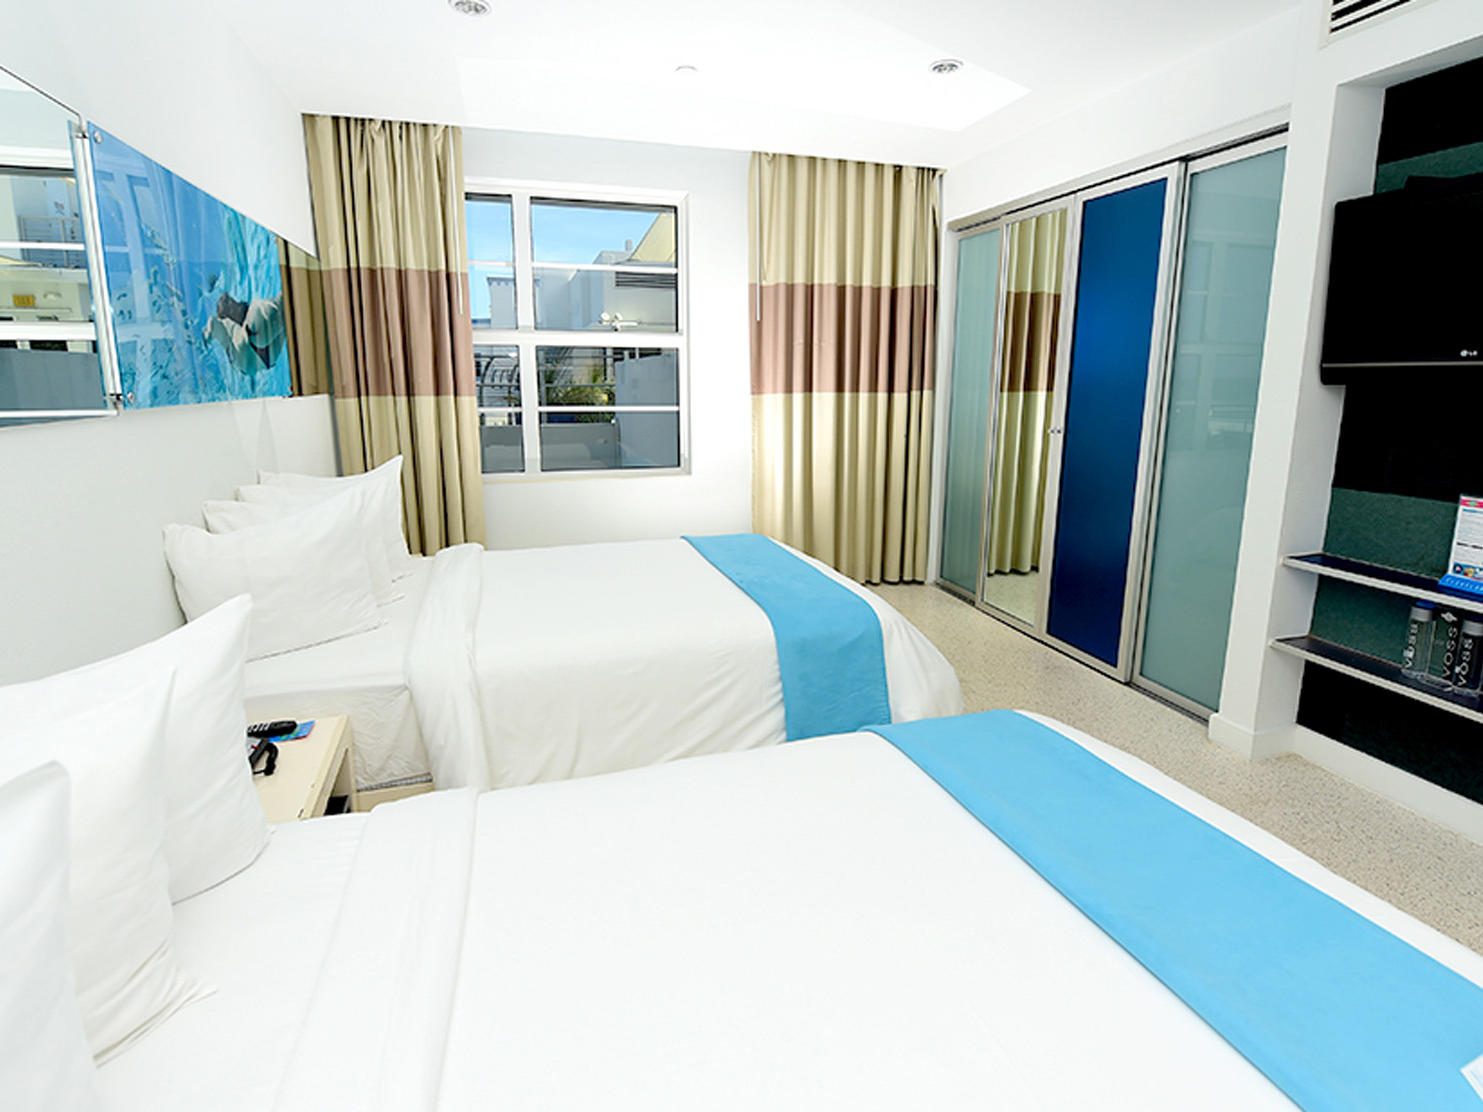 Double beds in Pool view double room at Clevelander South Beach